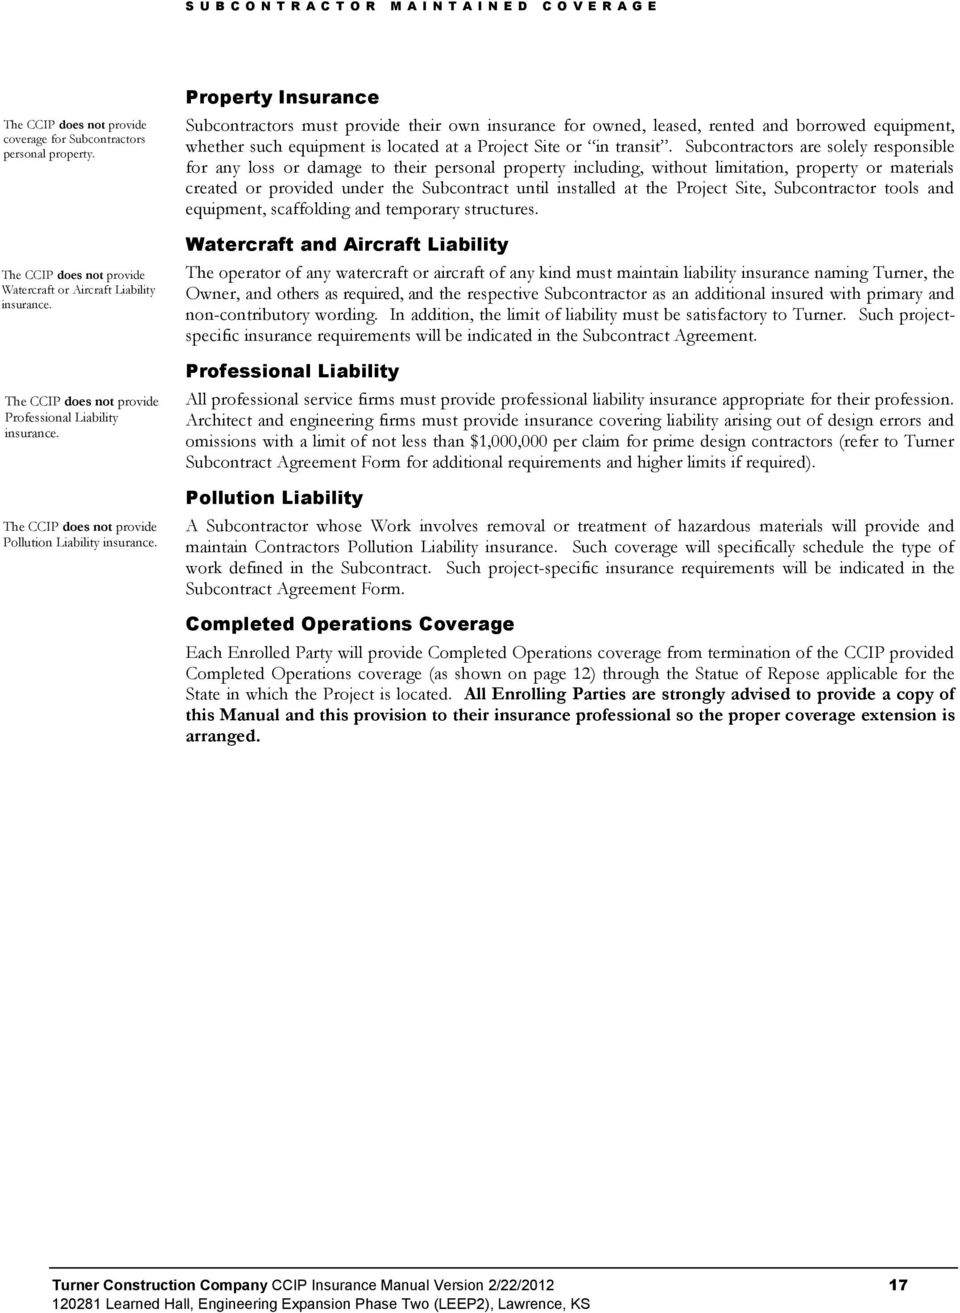 Ccip insurance manual turner construction company pdf property insurance subcontractors must provide their own insurance for owned leased rented and borrowed platinumwayz